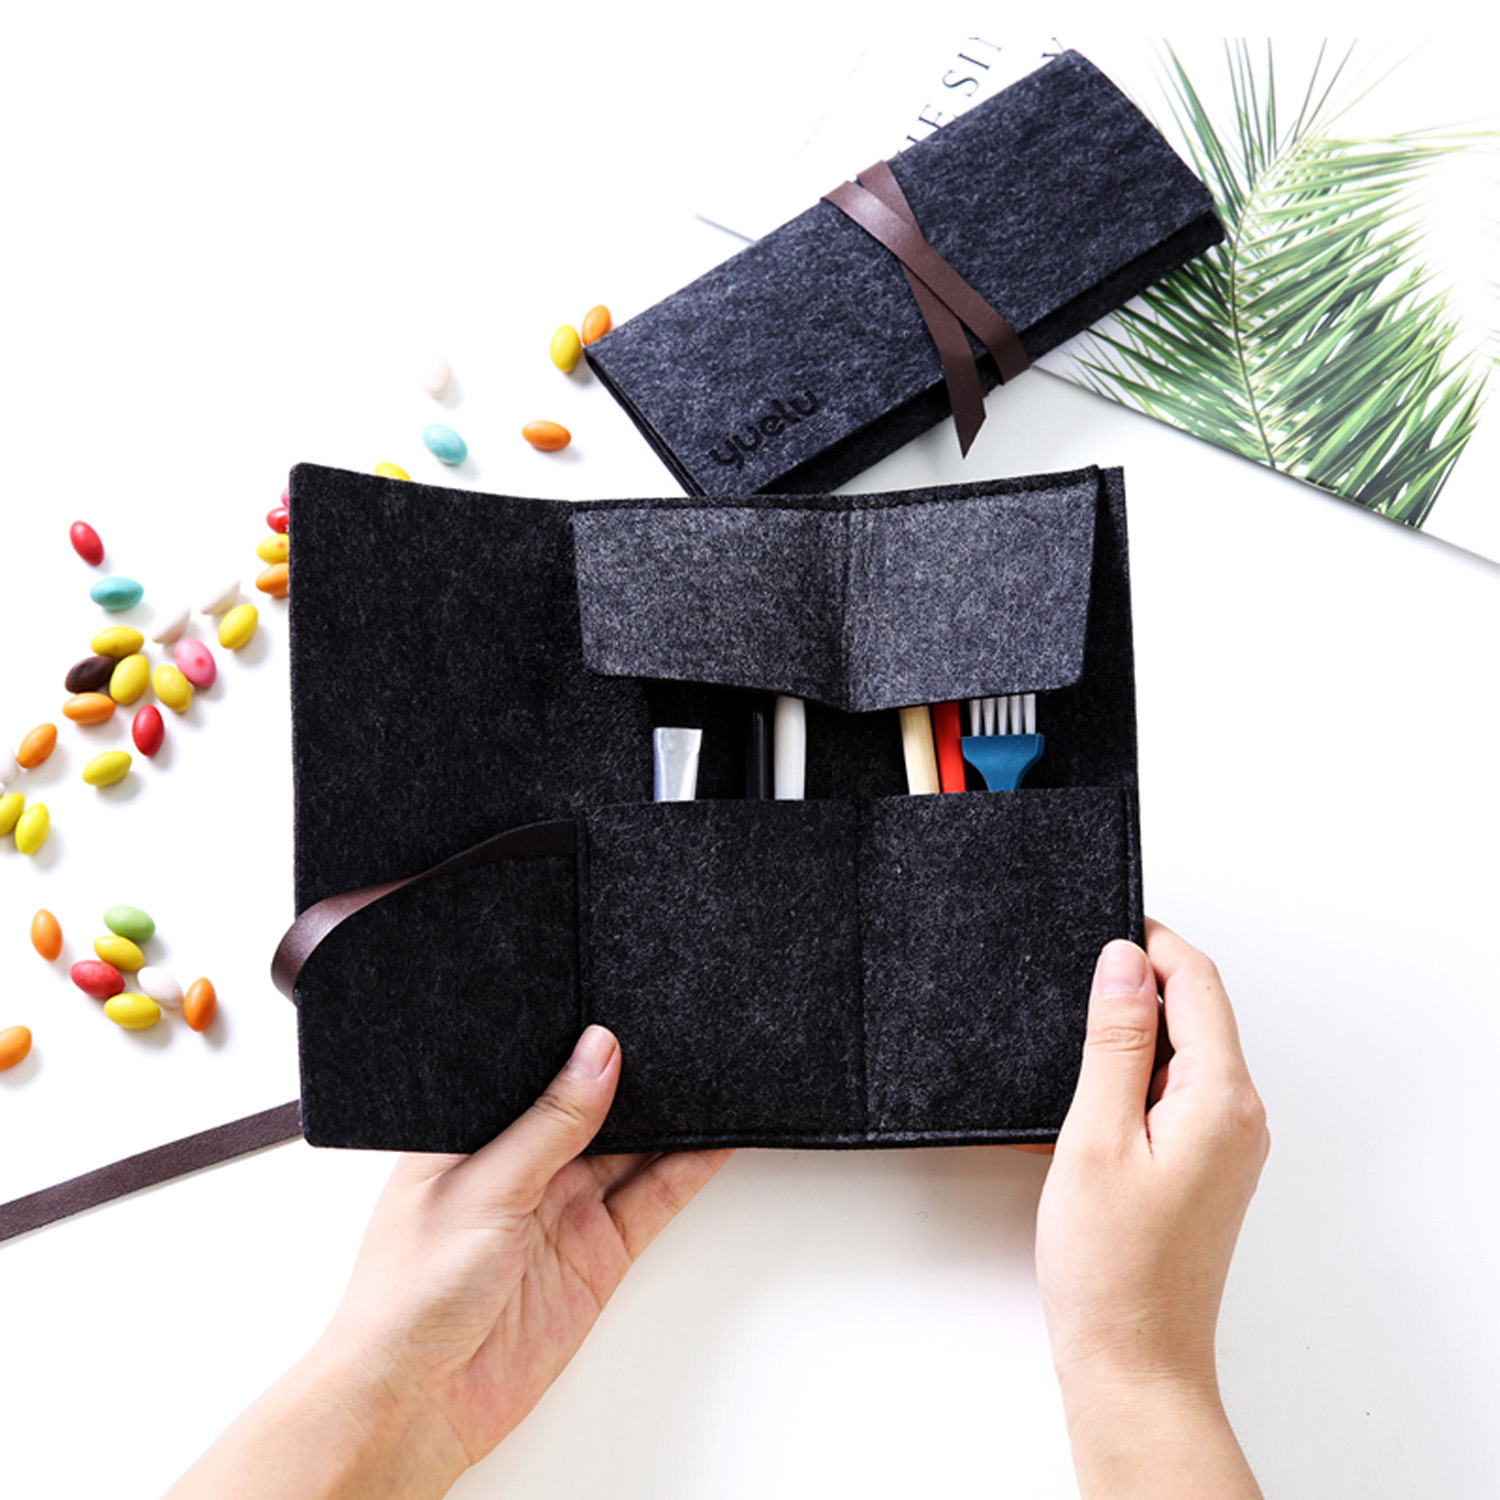 Fashion Drawing Toy Acccessories Scratch Tools Storage Bag Holder Pouch For Scraper Brush Scratch Pen Bamboo Sticks